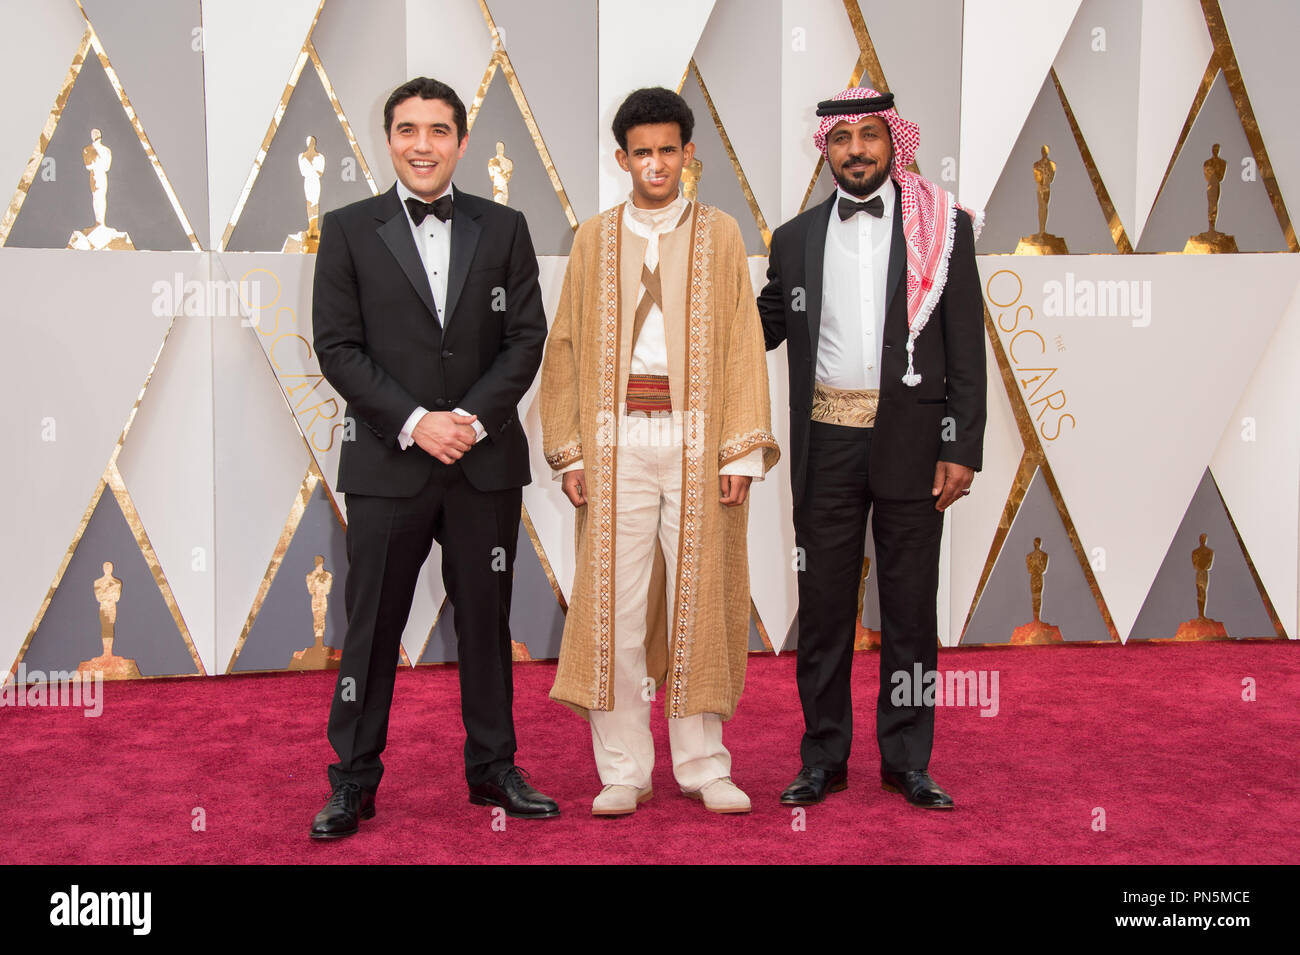 Oscar®-nominee, Naji Abu Nowar Jordan, and guests arrive at The 88th Oscars® at the Dolby® Theatre in Hollywood, CA on Sunday, February 28, 2016.  File Reference # 32854_019THA  For Editorial Use Only -  All Rights Reserved - Stock Image